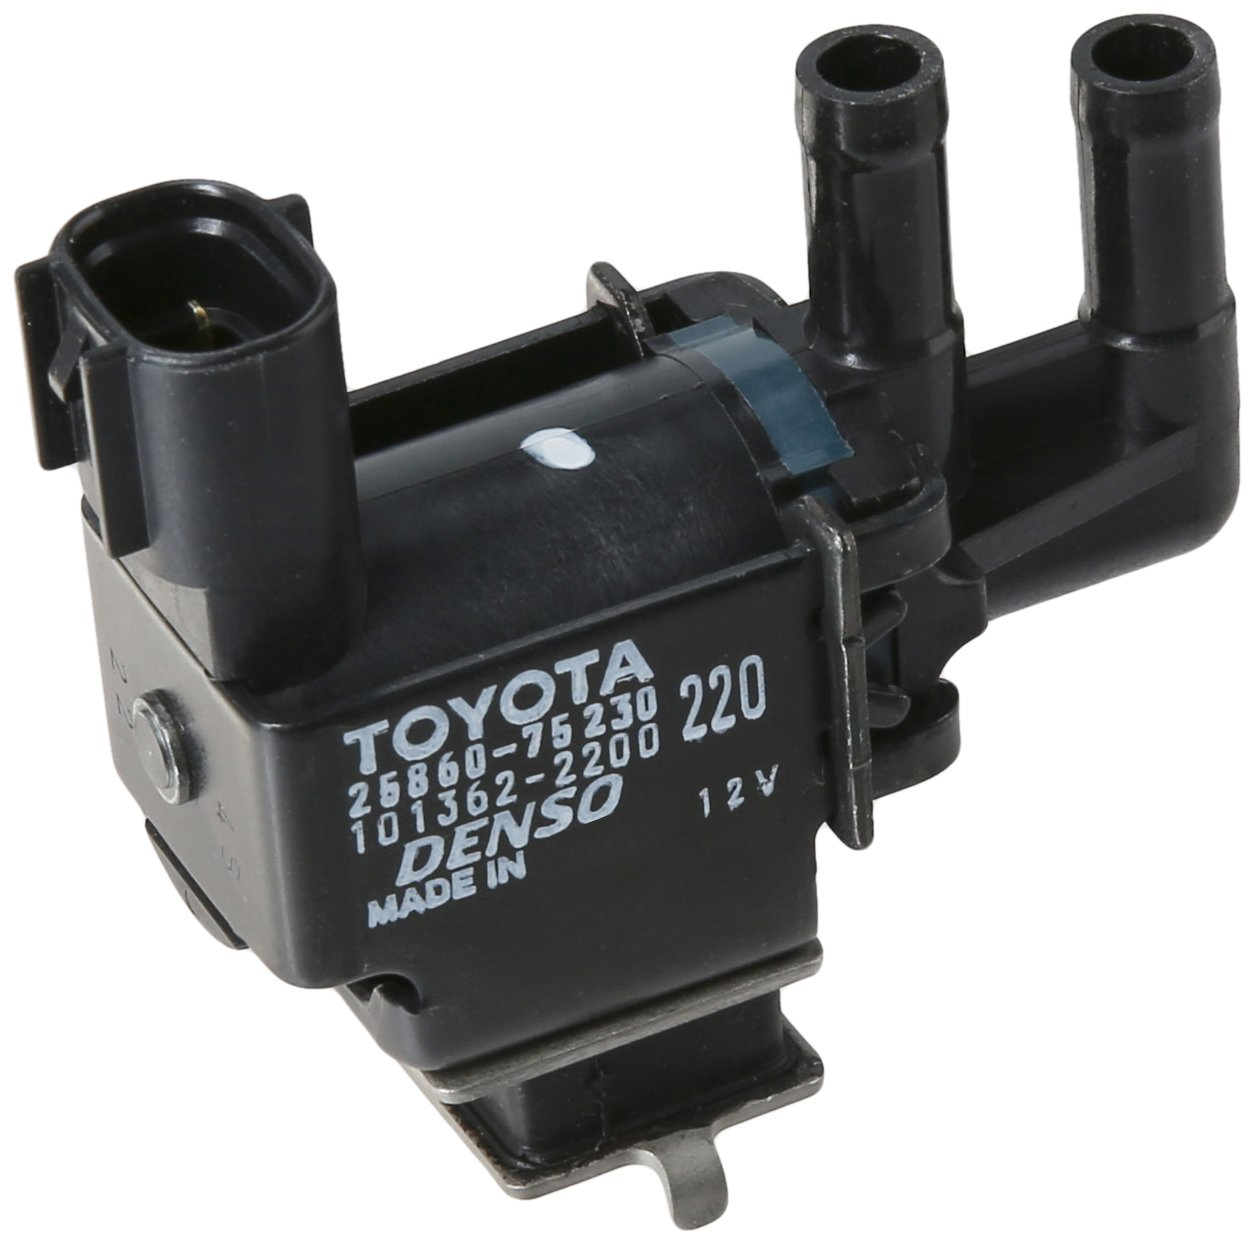 Toyota 25860-75230 Vapor Canister Purge Solenoid